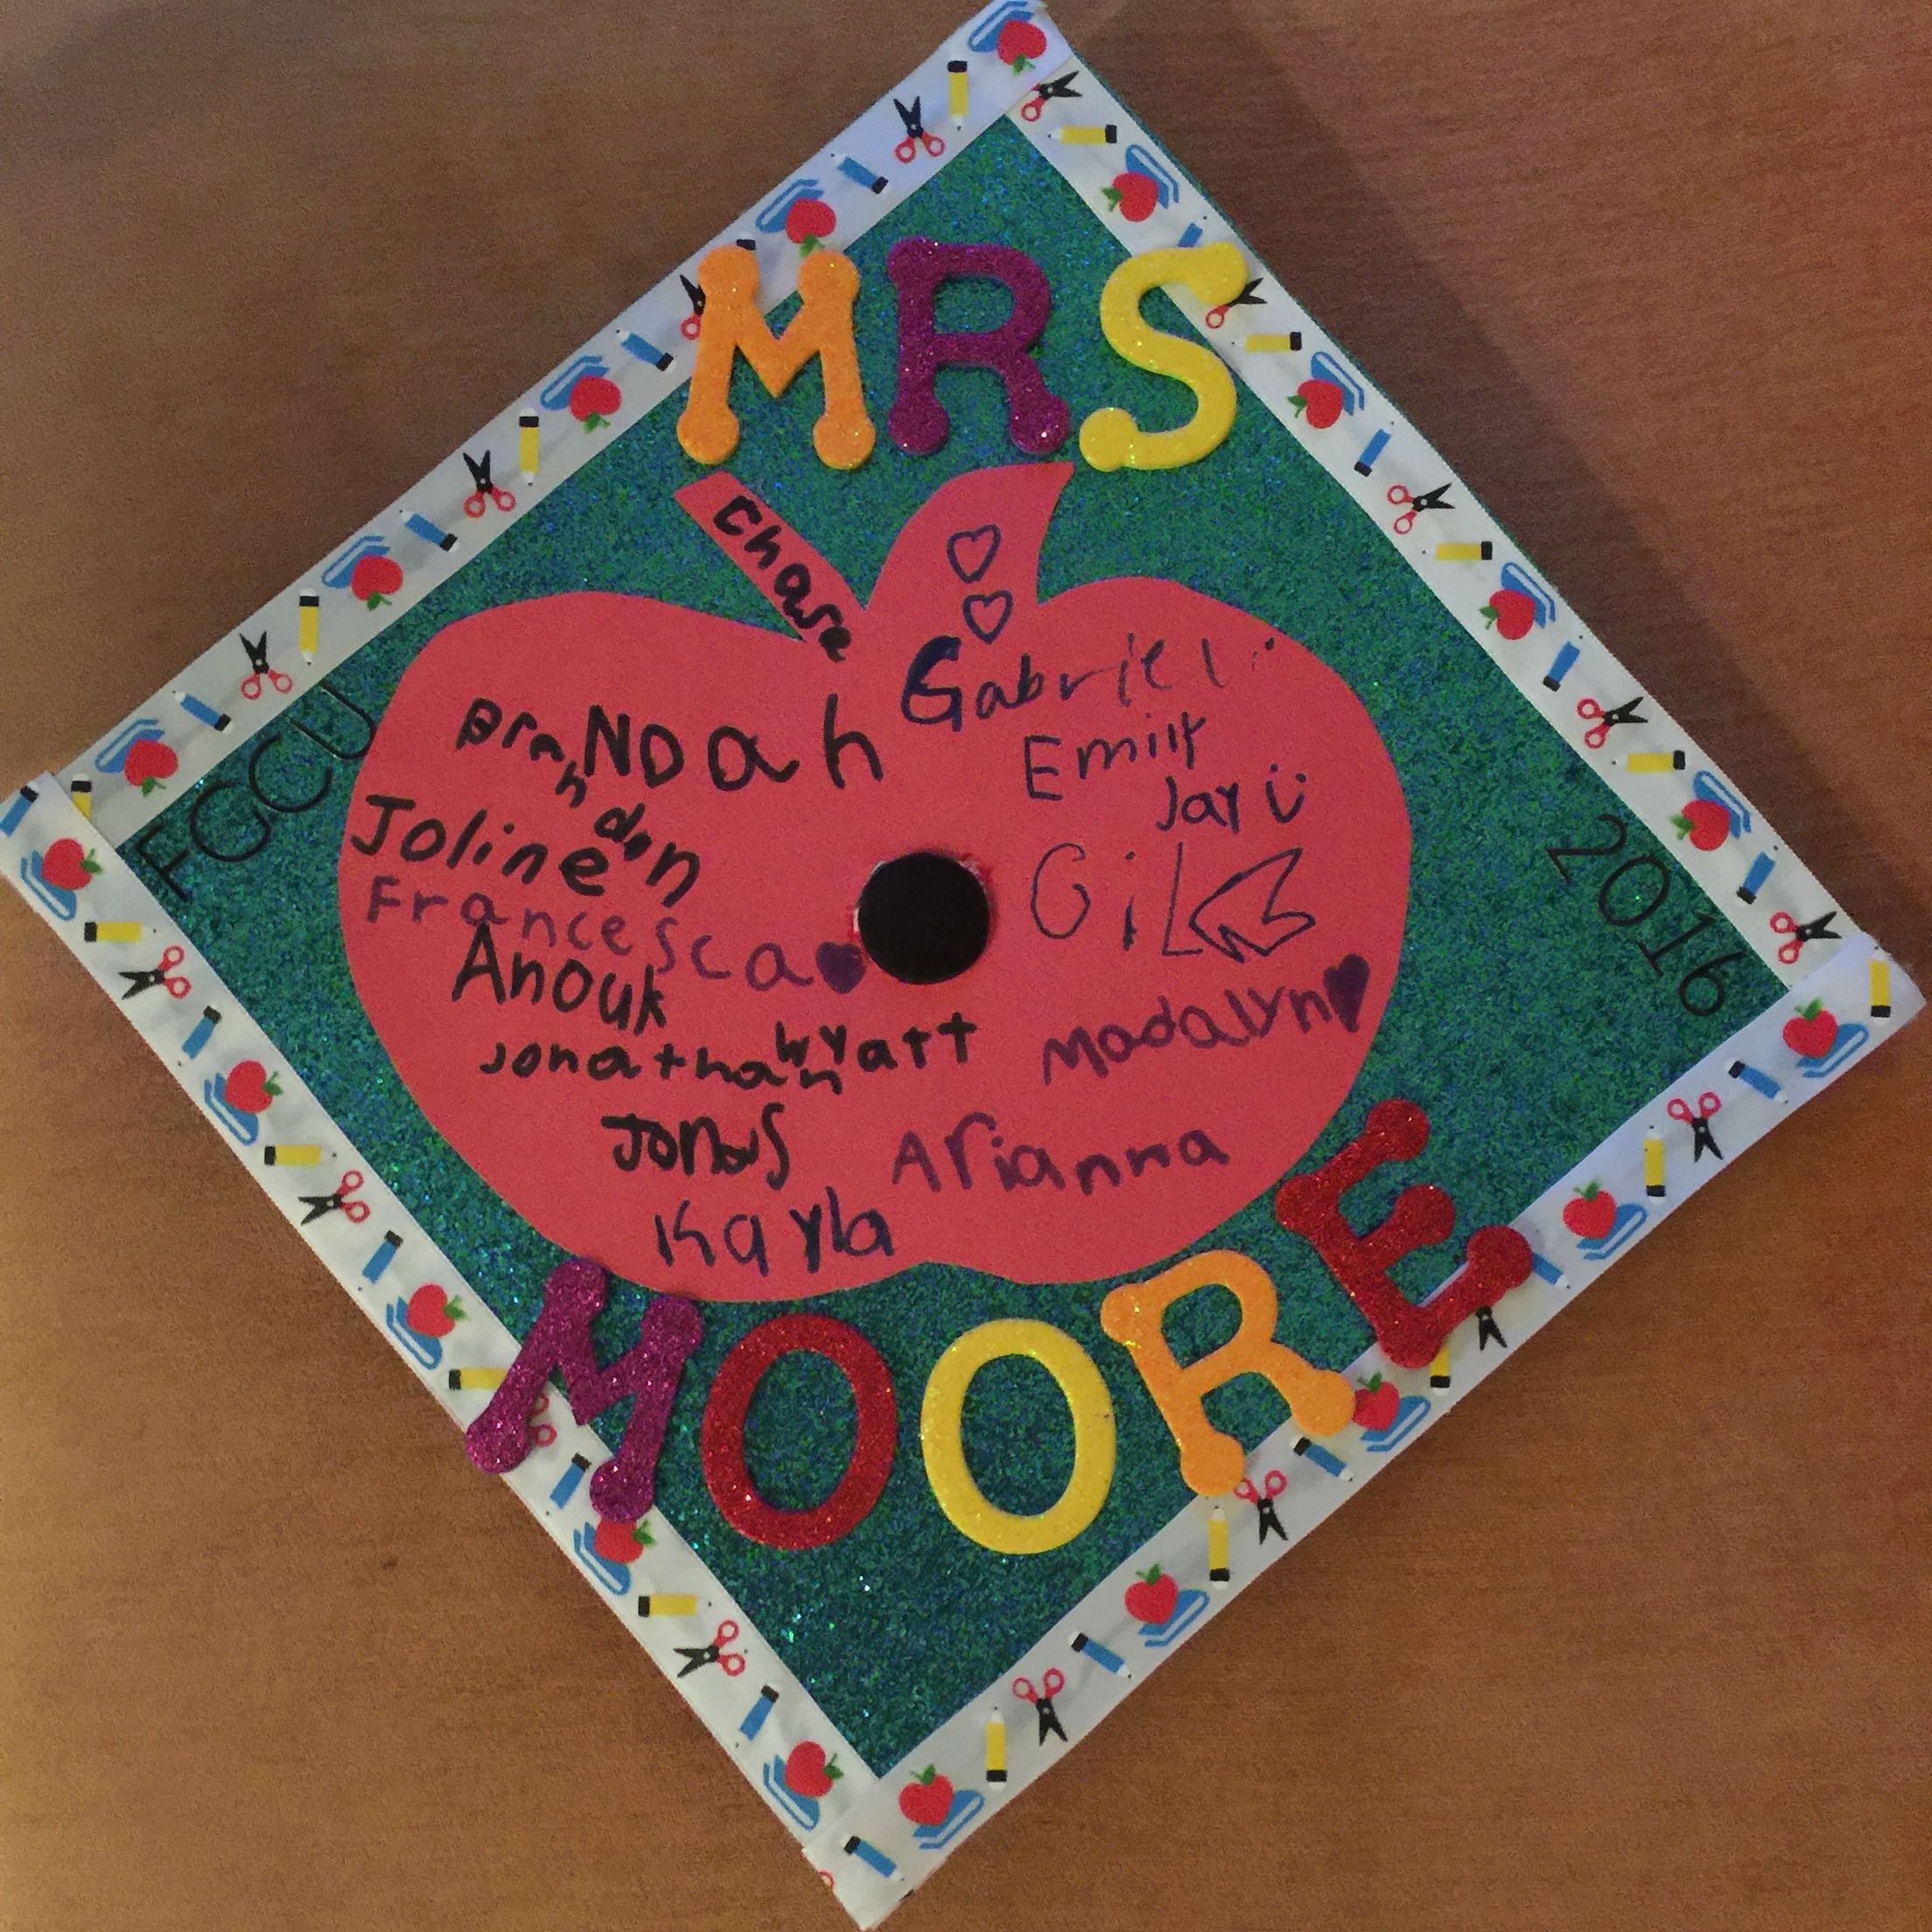 Decorating graduation cap ideas for teachers - Have Your Internship Students Sign Your Cap